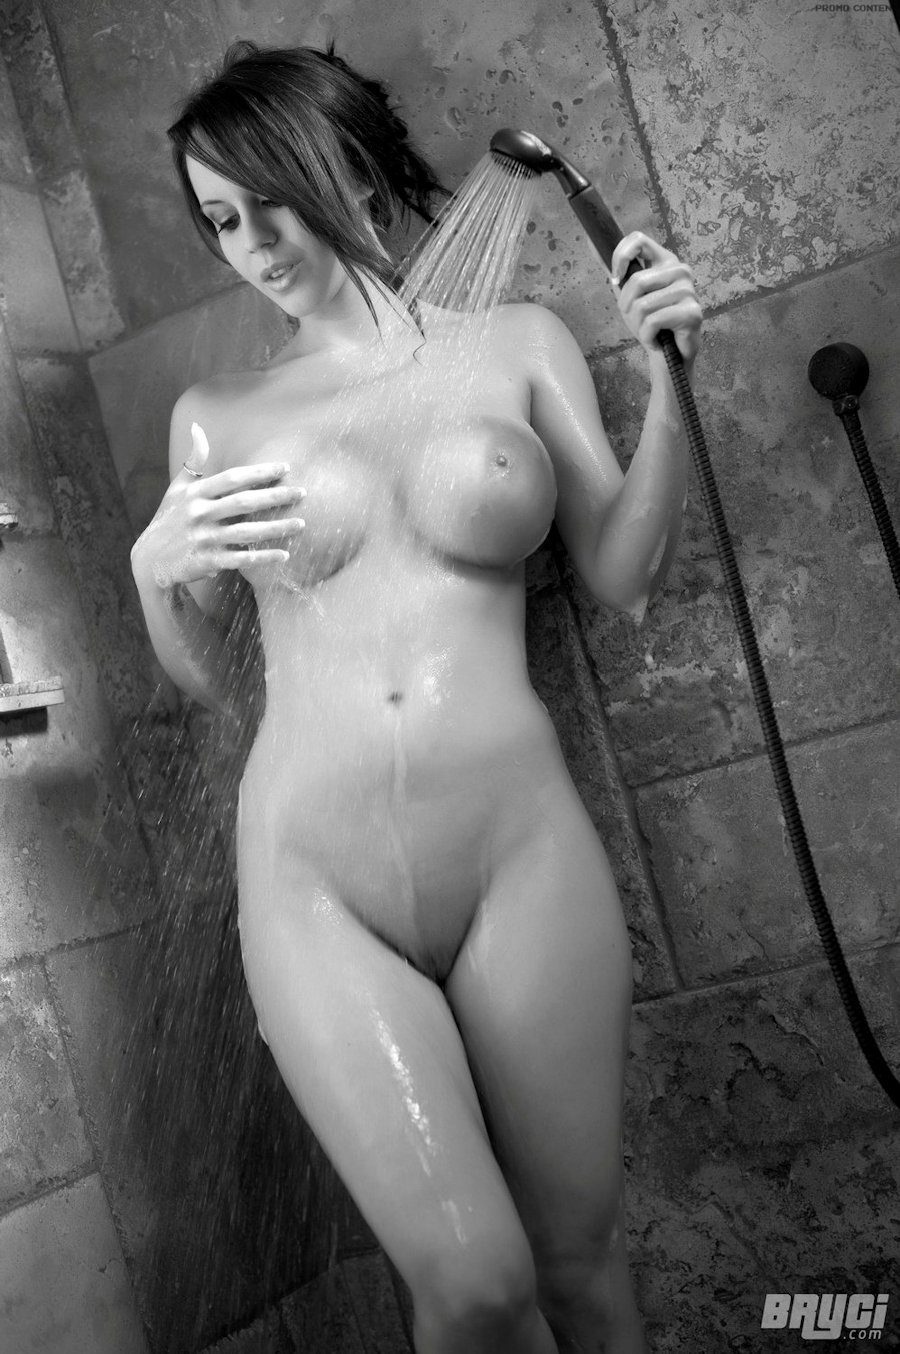 naked black girls in the shower